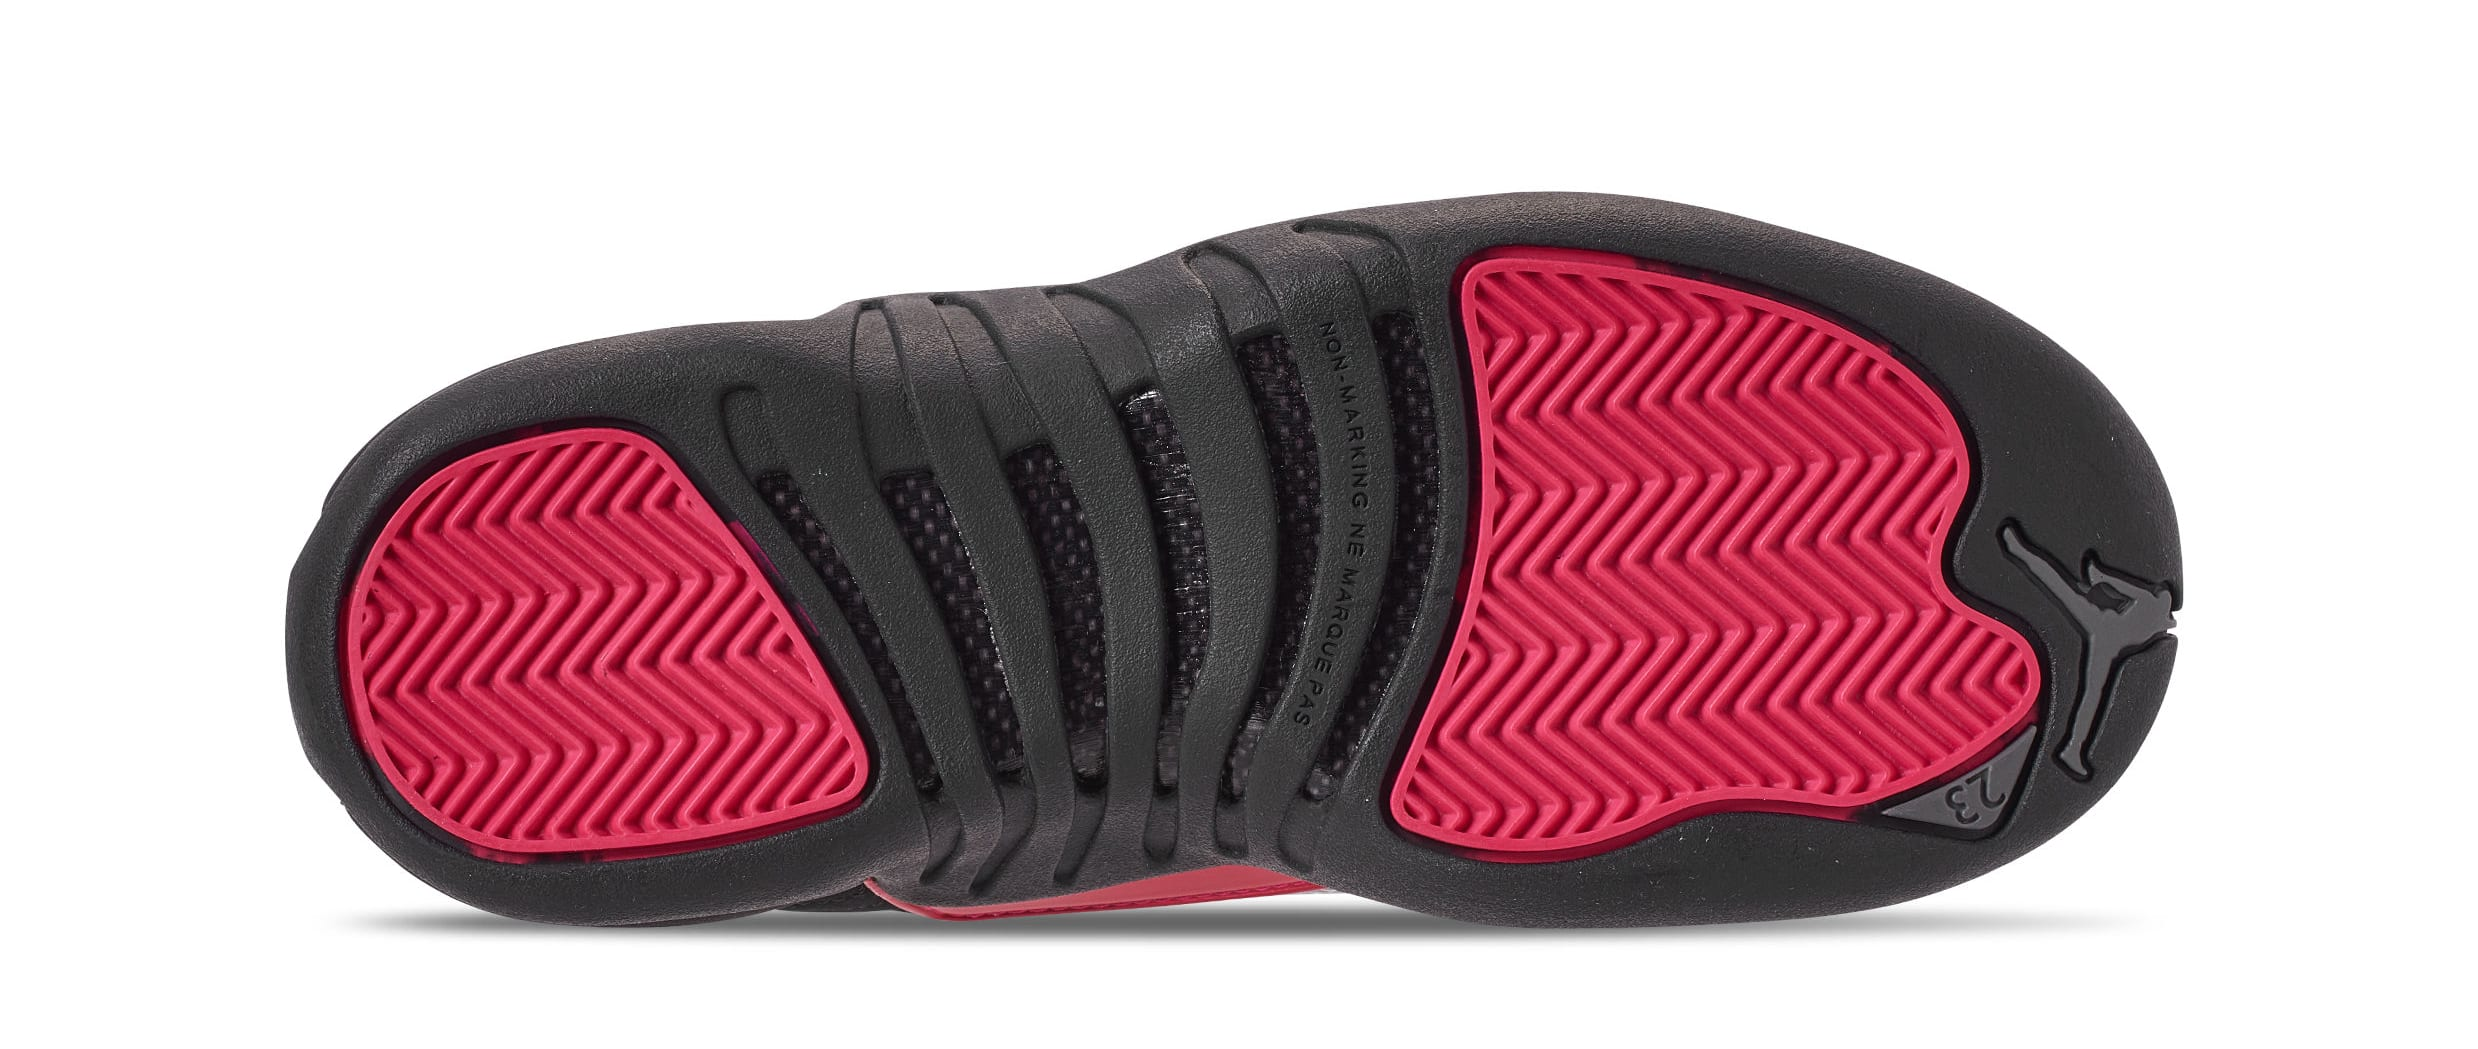 4be2be82b1e Image via Finish Line Air Jordan 12 Retro GG  Black Dark Grey Rush Pink   510815-